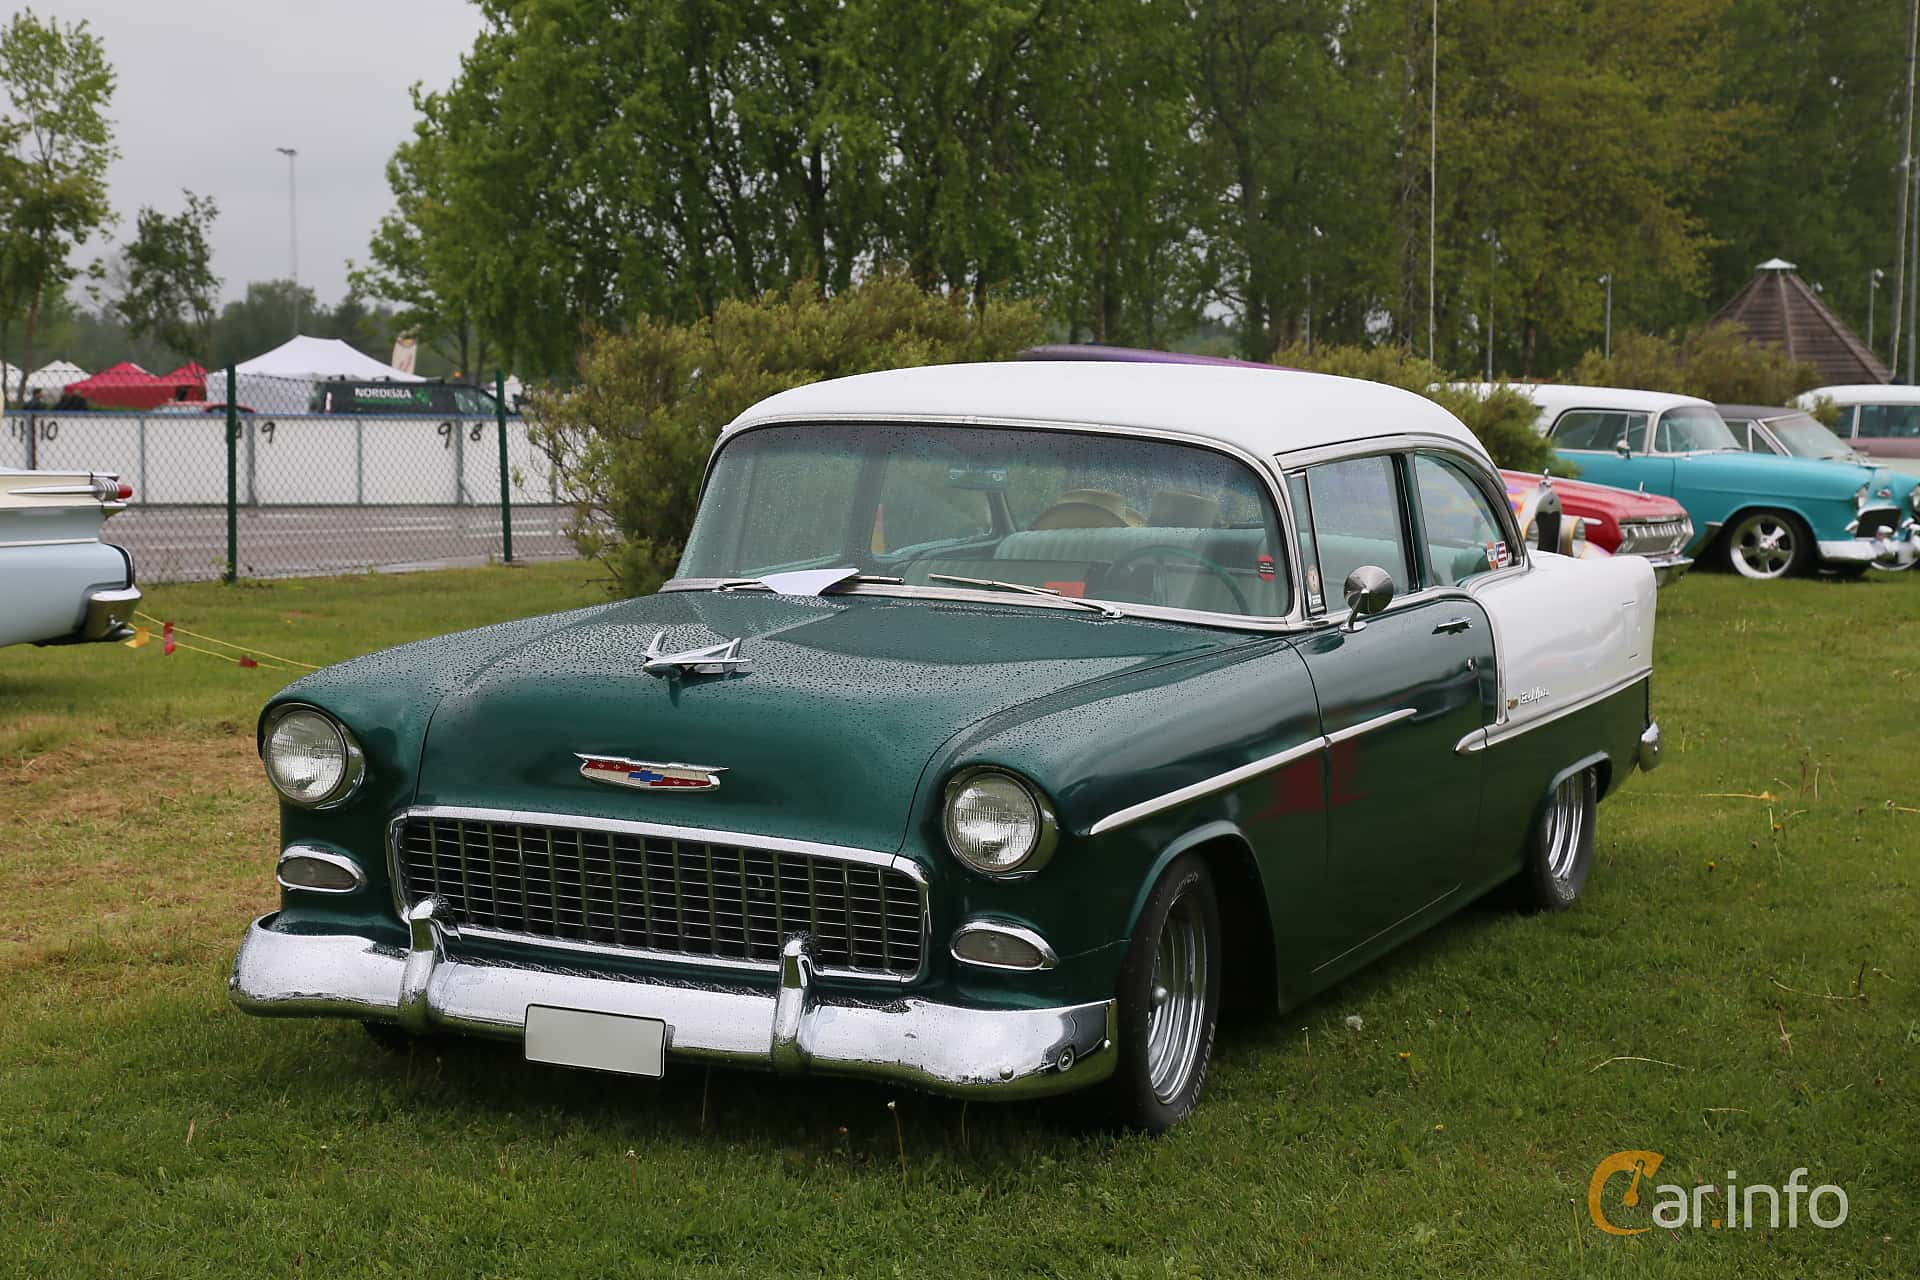 Chevrolet Bel Air 2-door Sedan 4.3 V8 Powerglide, 183hp, 1955 at Nossebro Motorlördag  2019